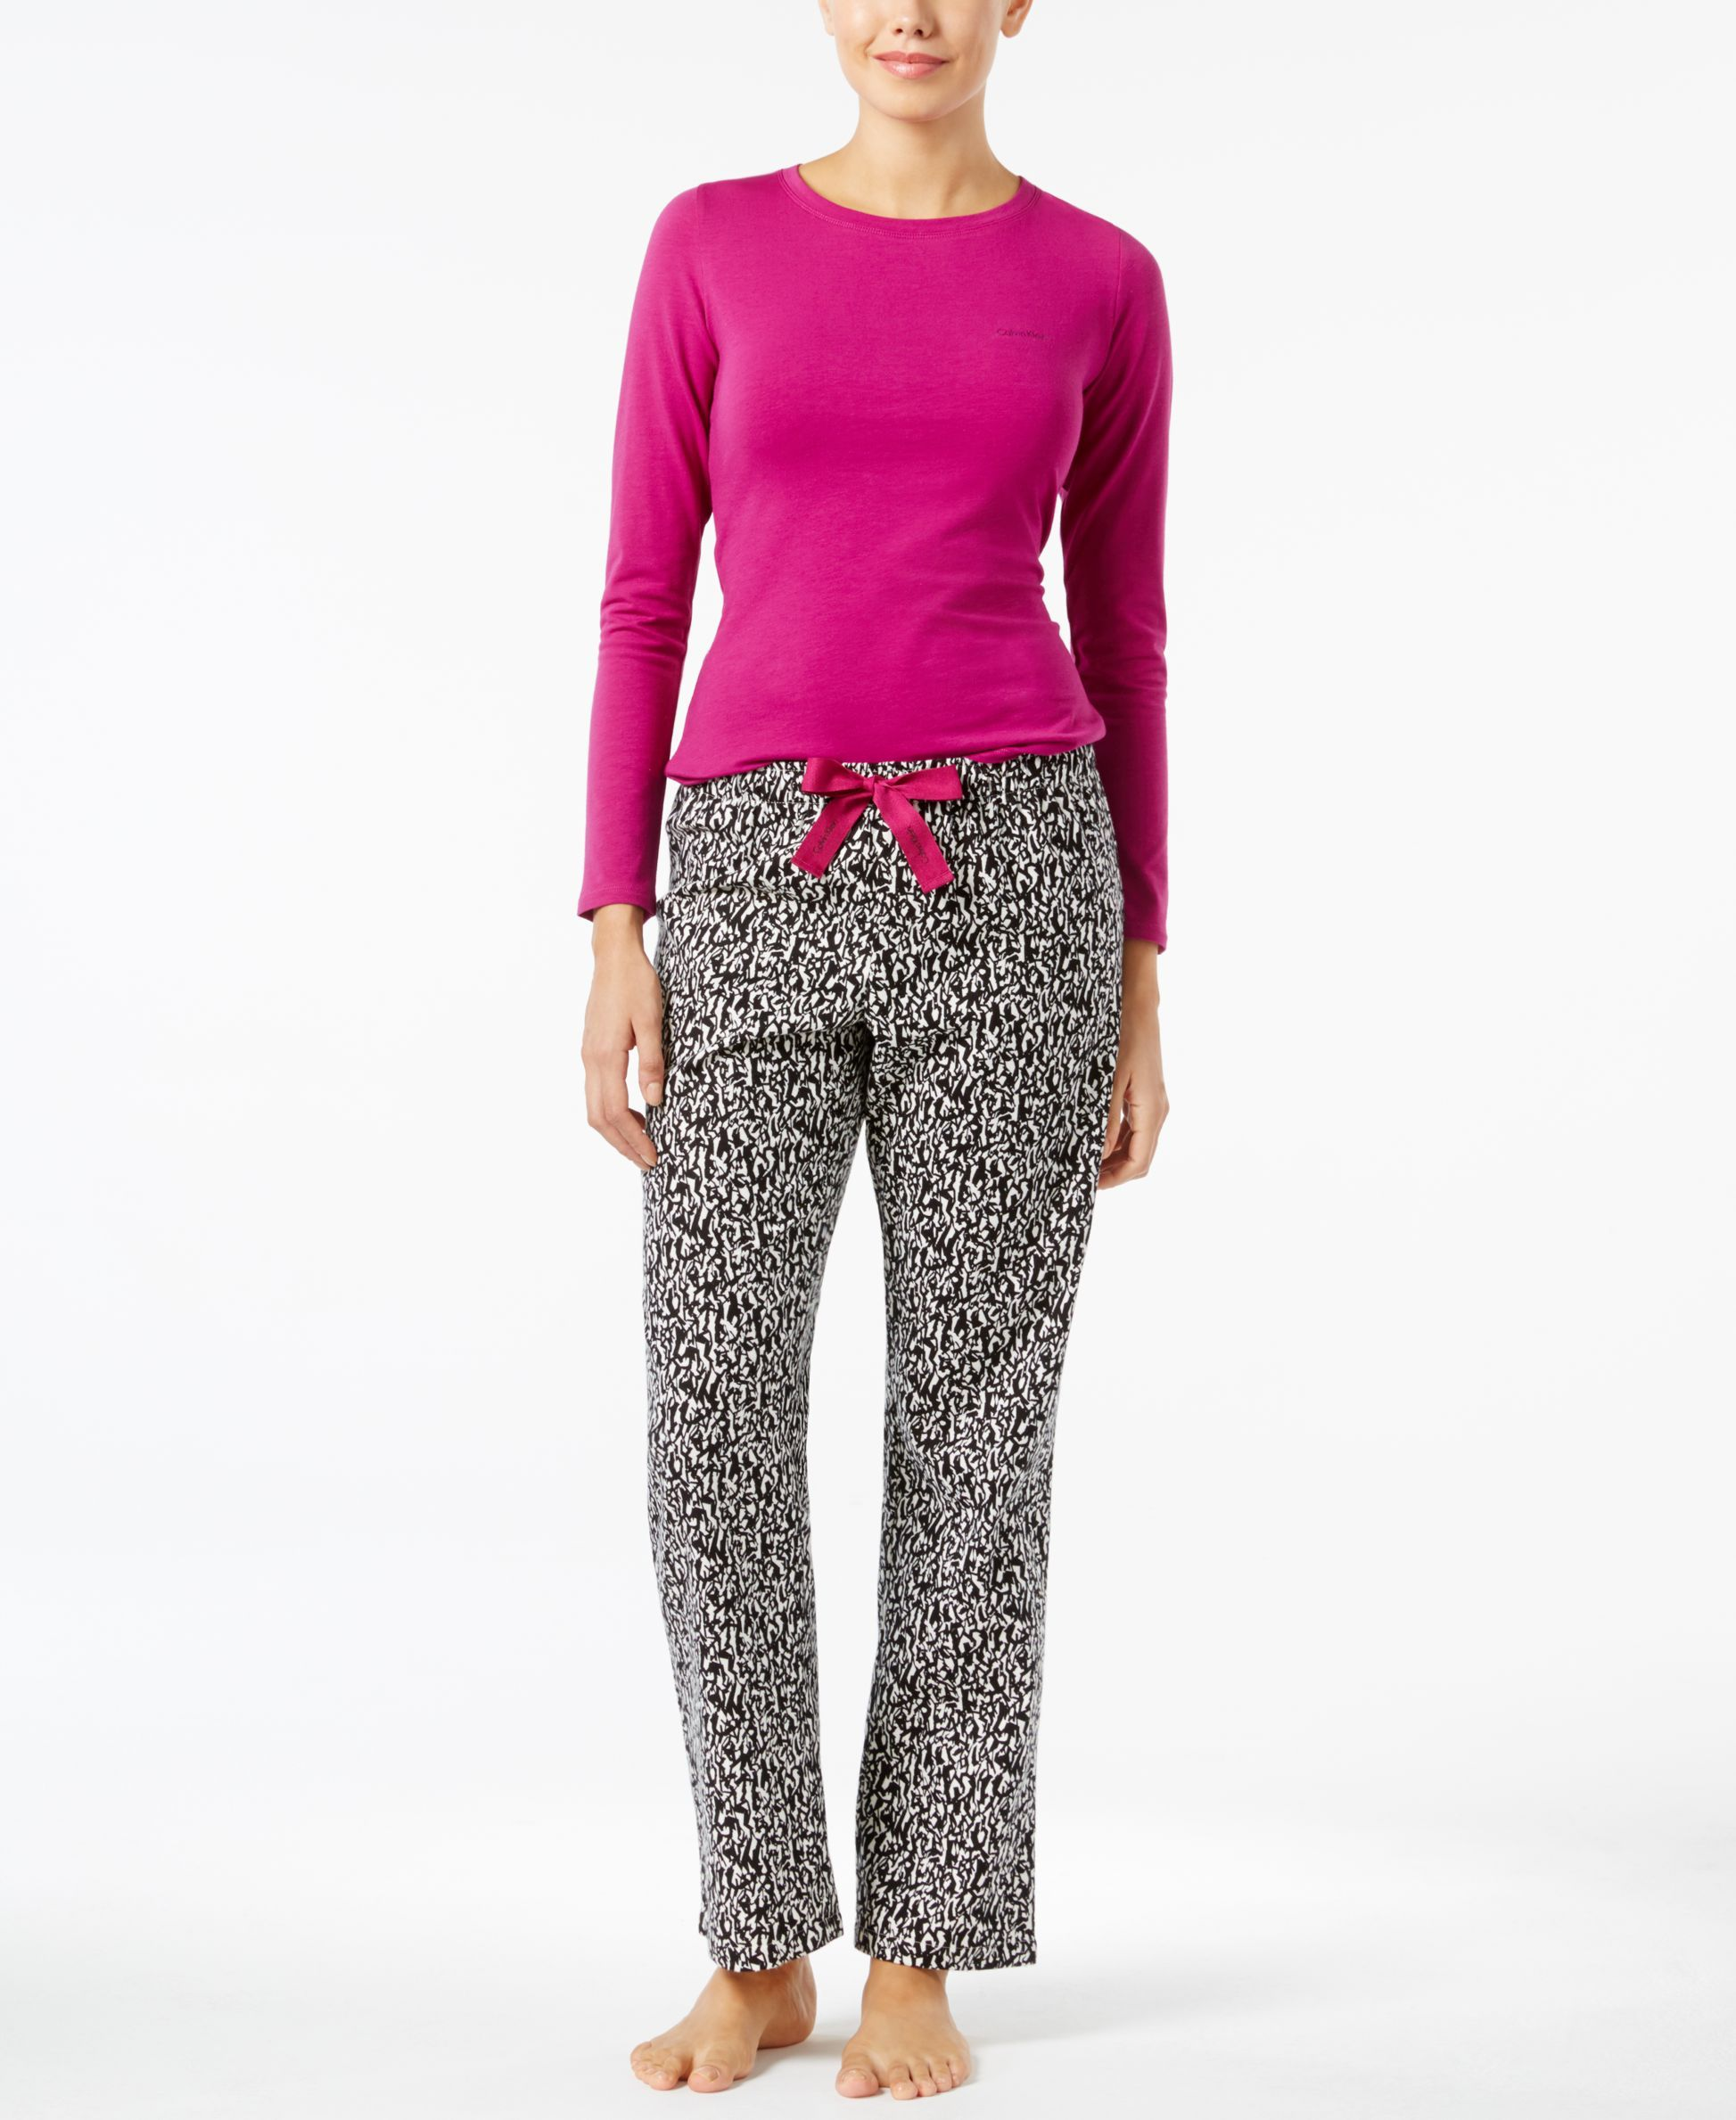 Calvin Klein Knit Top and Flannel Pajama Pants Gift Set